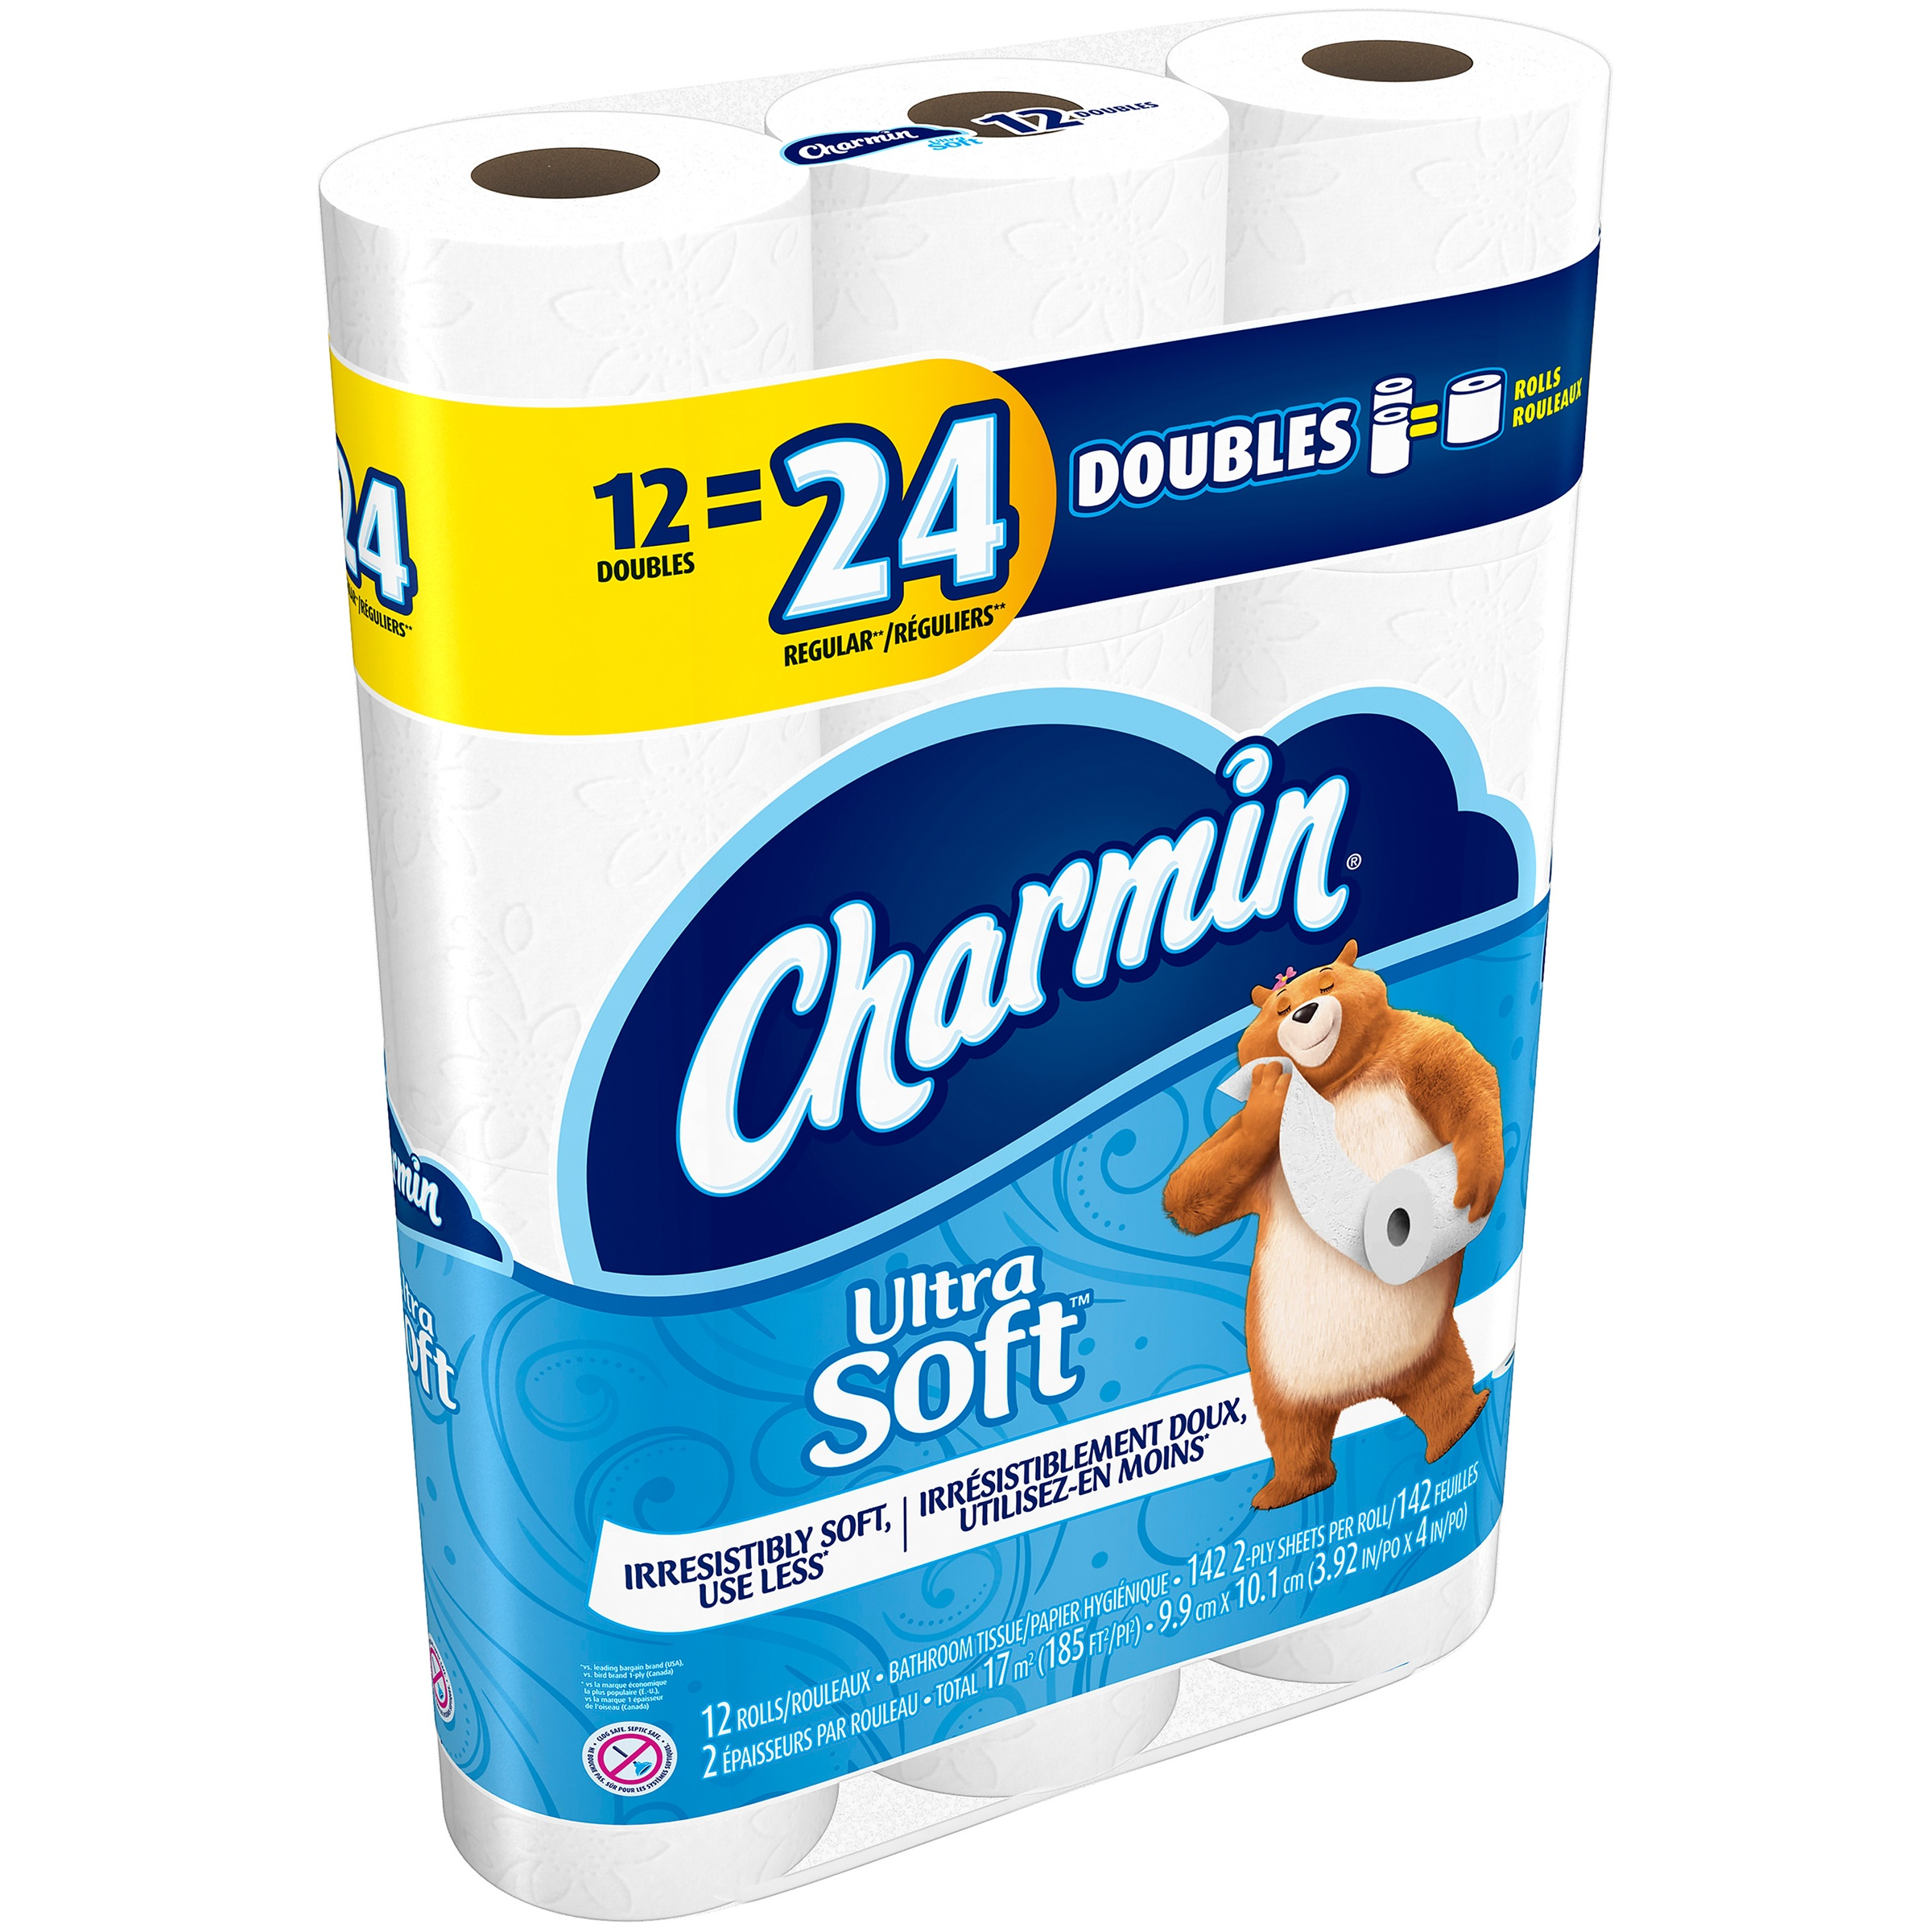 Charmin Ultra Soft Toilet Paper 12 ct Pack by Procter & Gamble